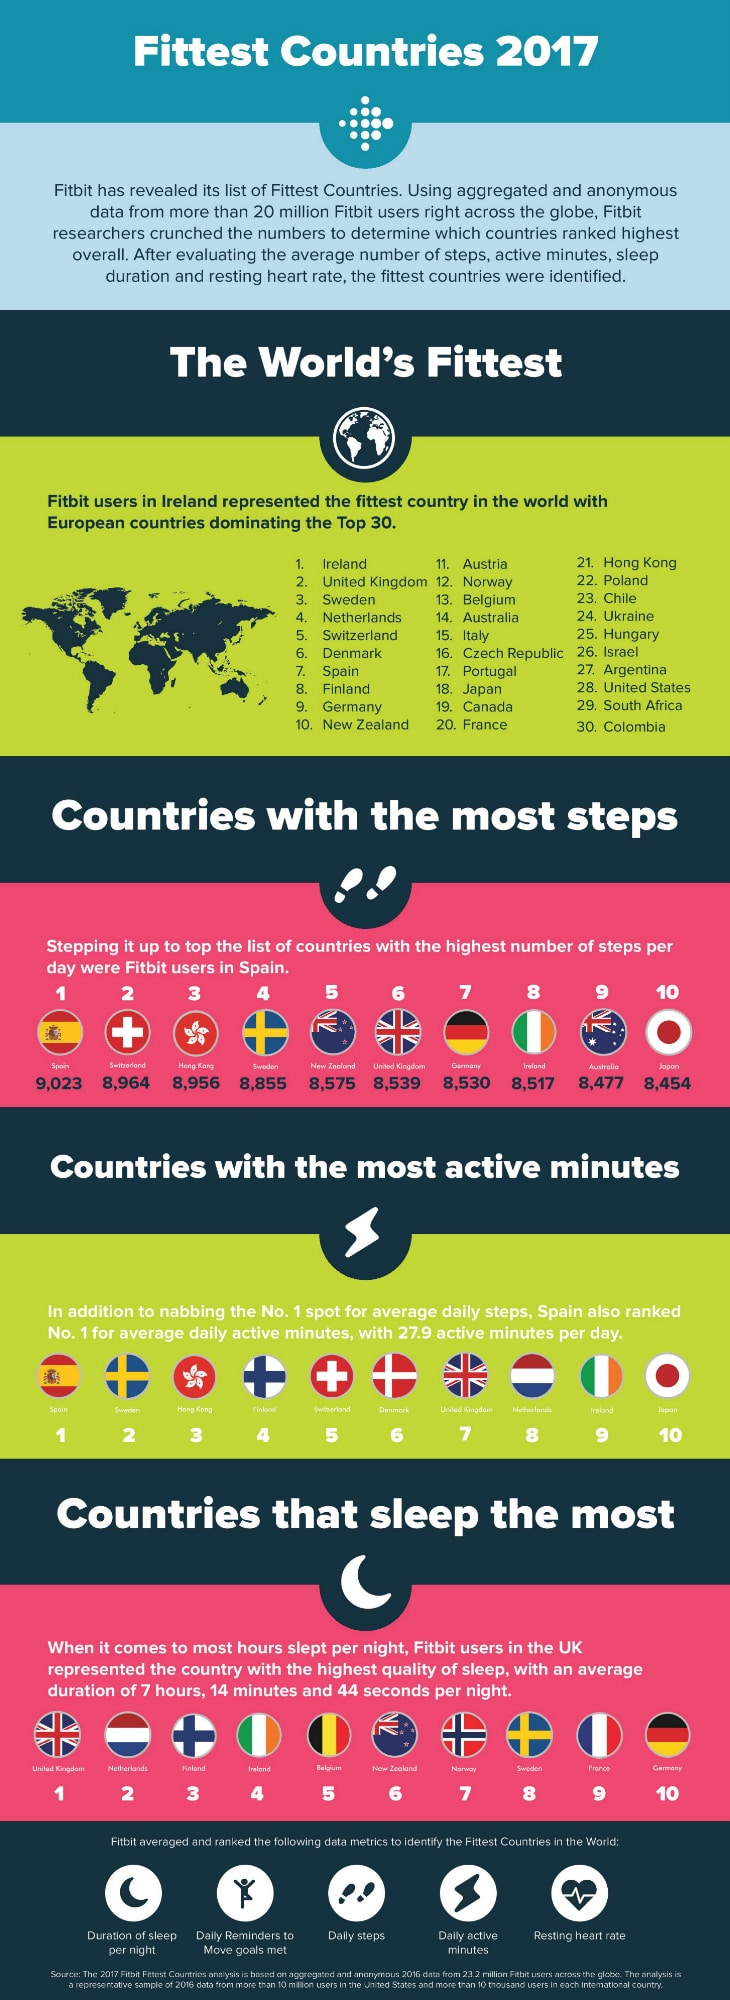 fitbit data reveals the world s fittest countries - Fitbit data reveals the world's fittest countries